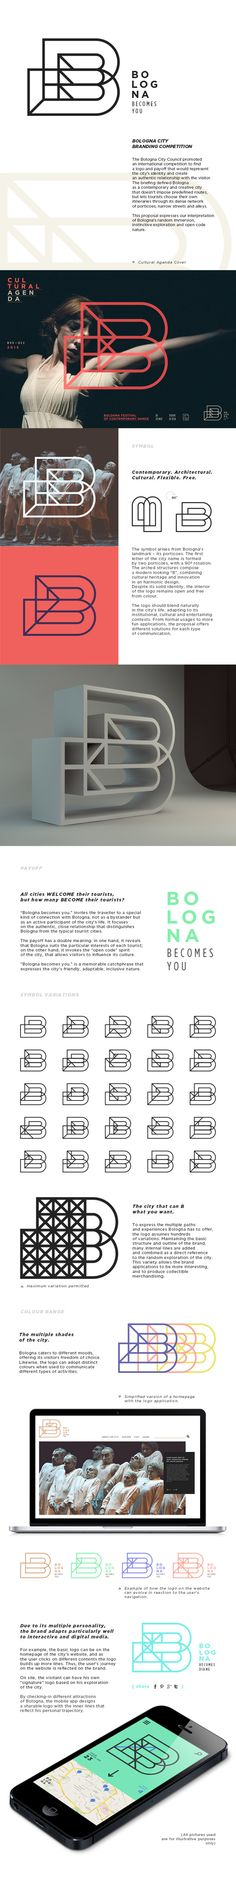 Bologna City Branding on Behance